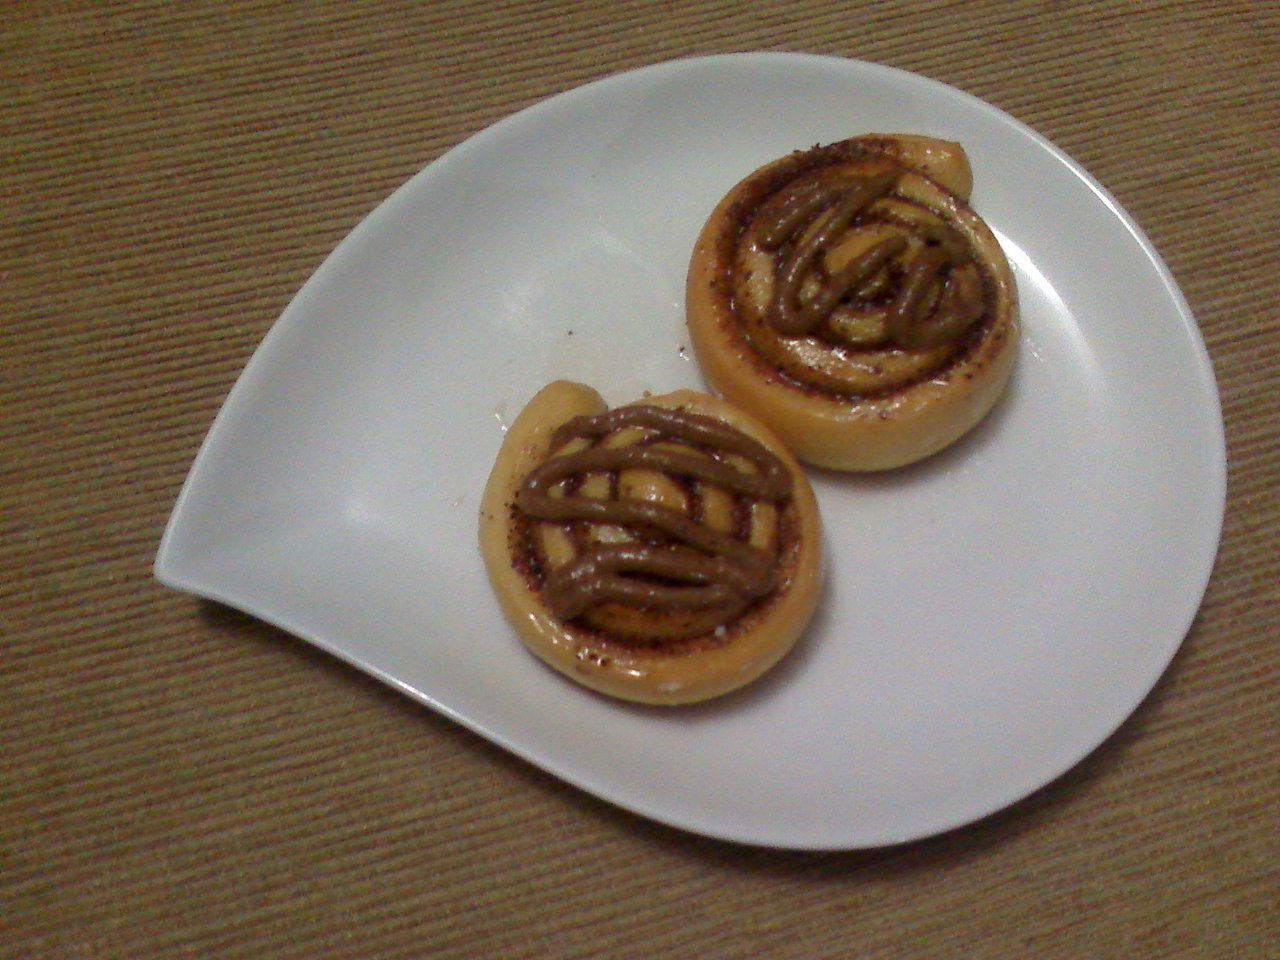 MINI CINAMON ROLLS